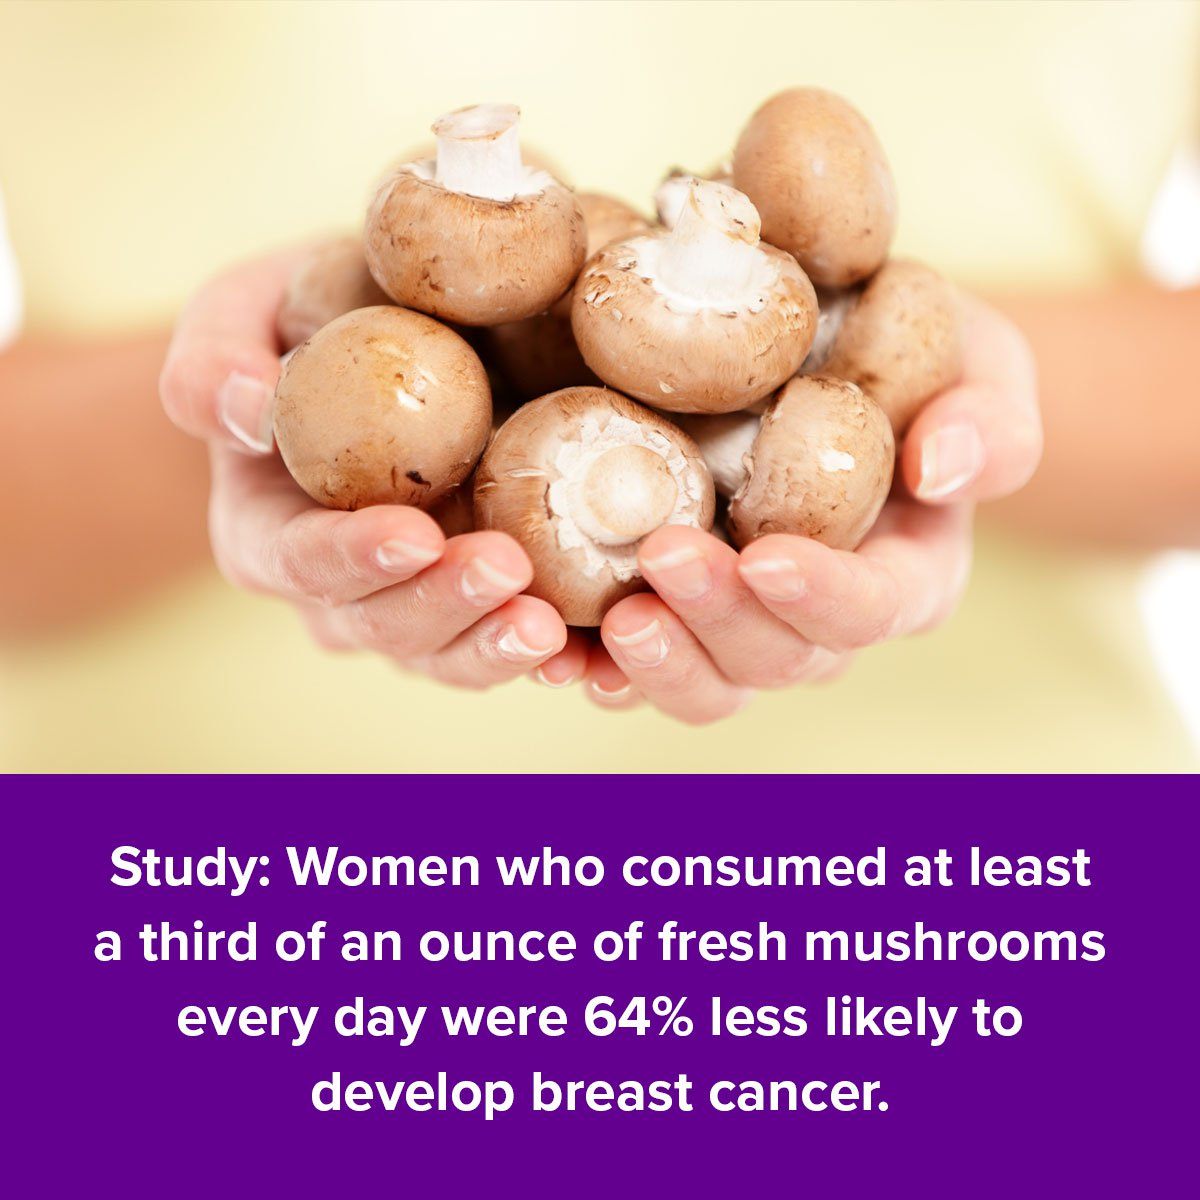 Study: Women who consumed at least a third of an ounce of fresh mushrooms every day were 64% less likely to develop breast cancer.